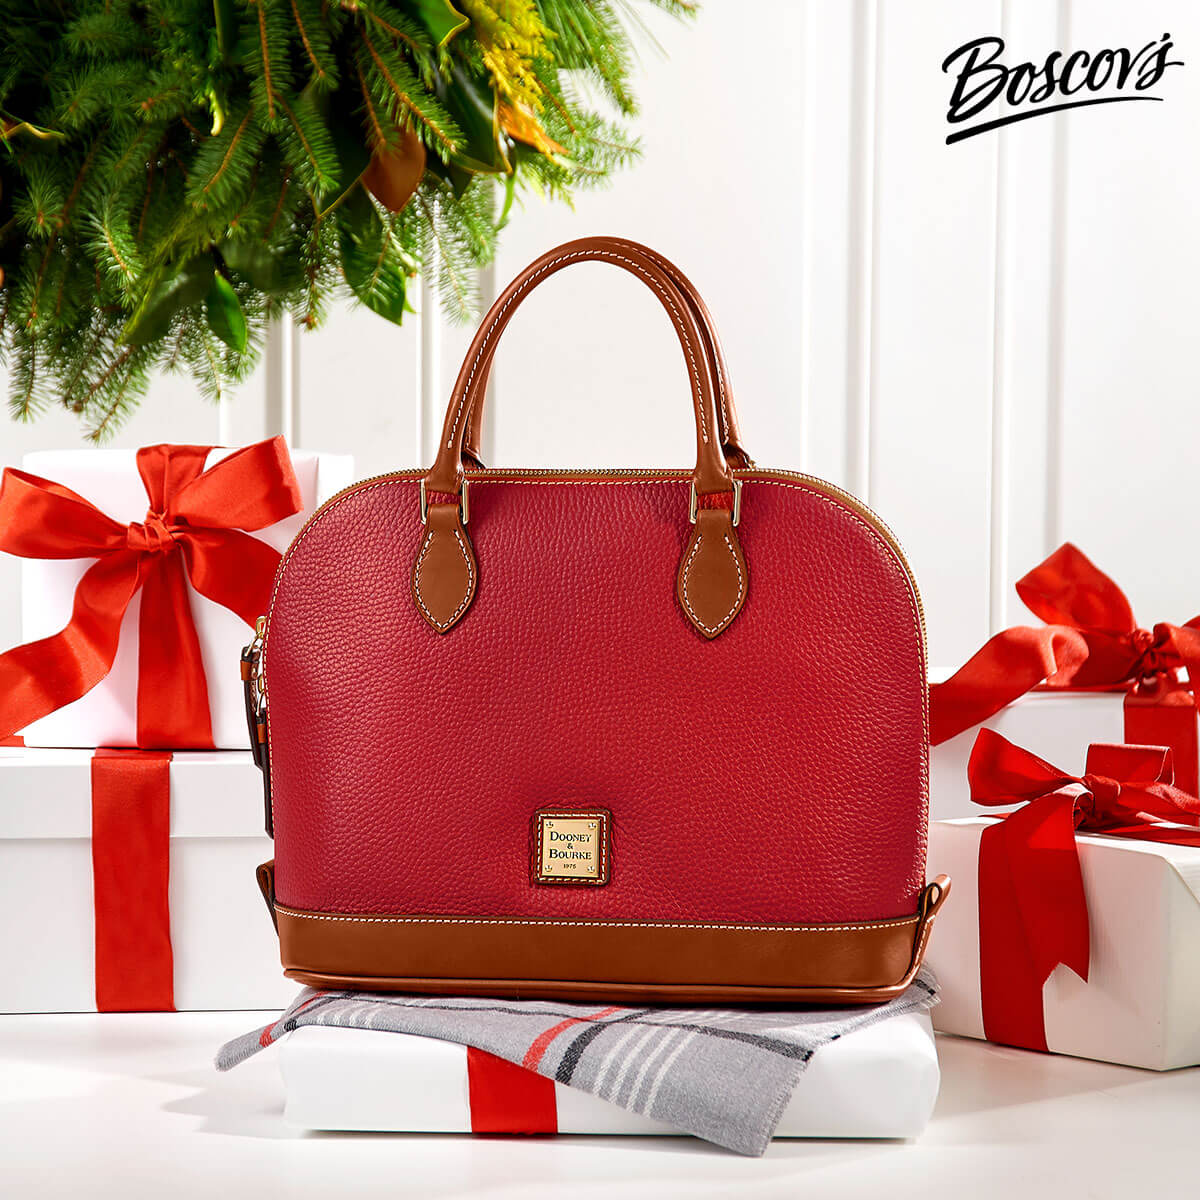 Photo of a red Dooney and Burke purse surrounded by presents